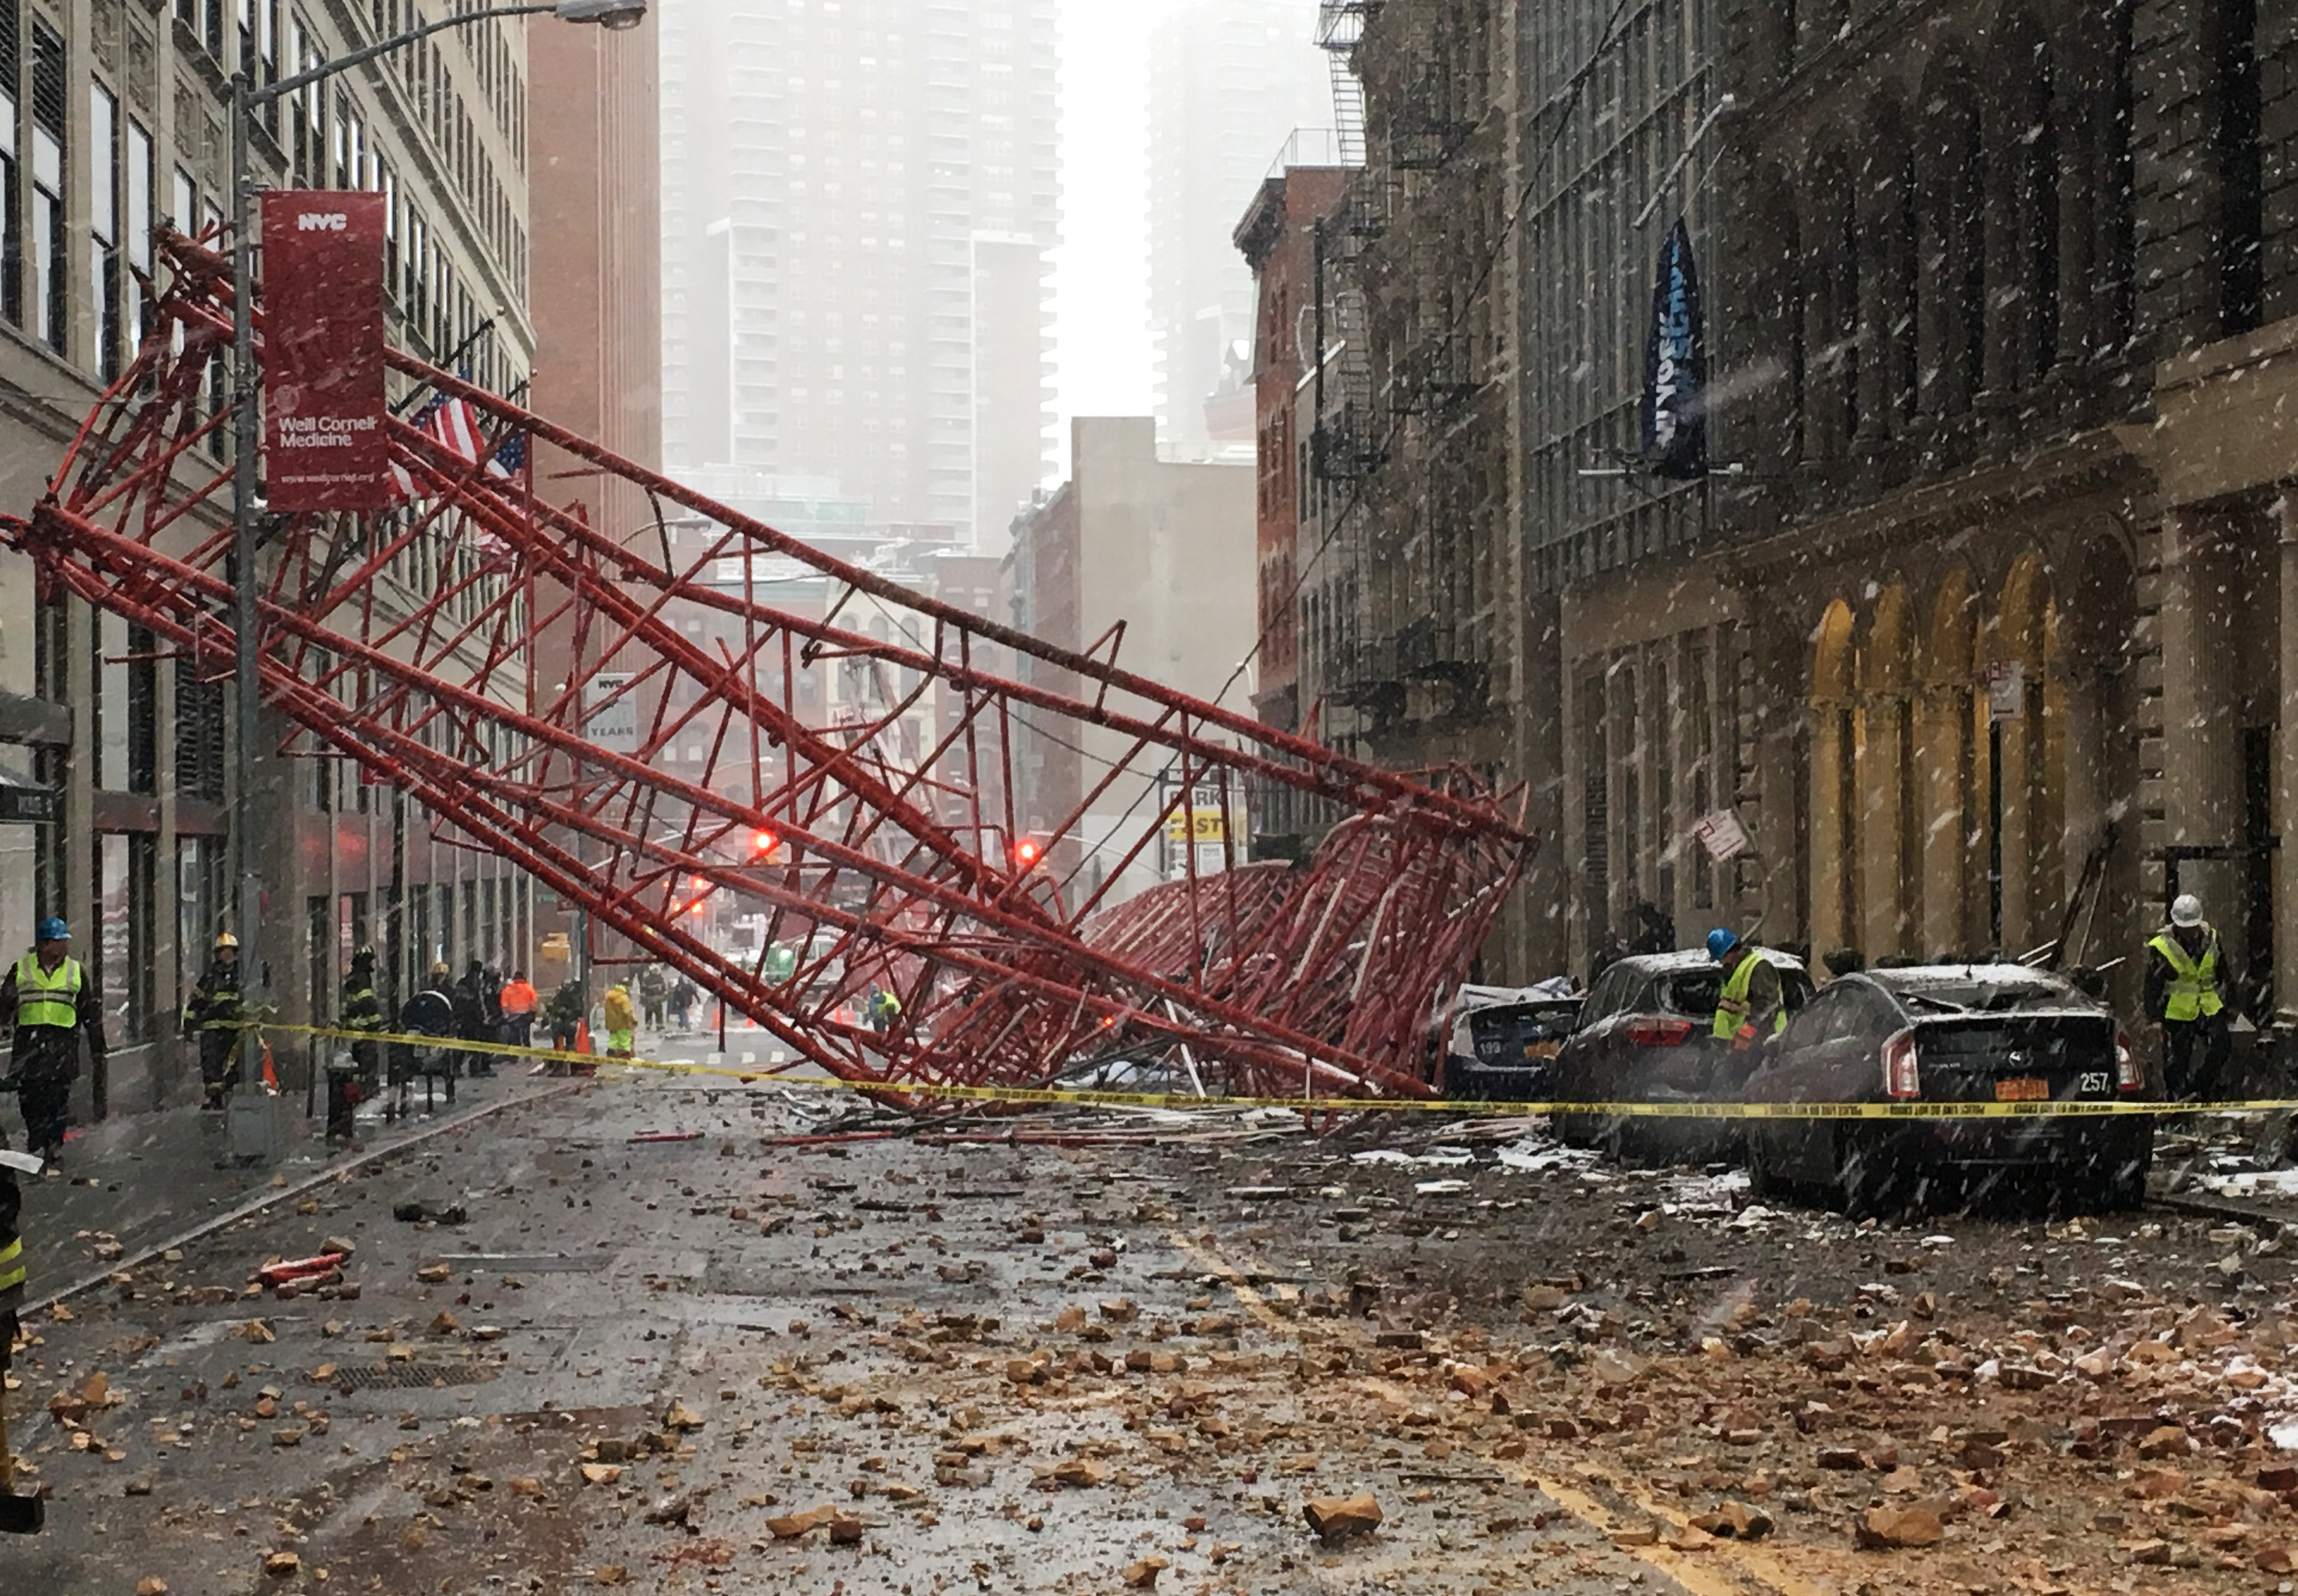 PHOTOS: Crane Collapses in New York, 1 Dead, Possible Gas Leak (Video)